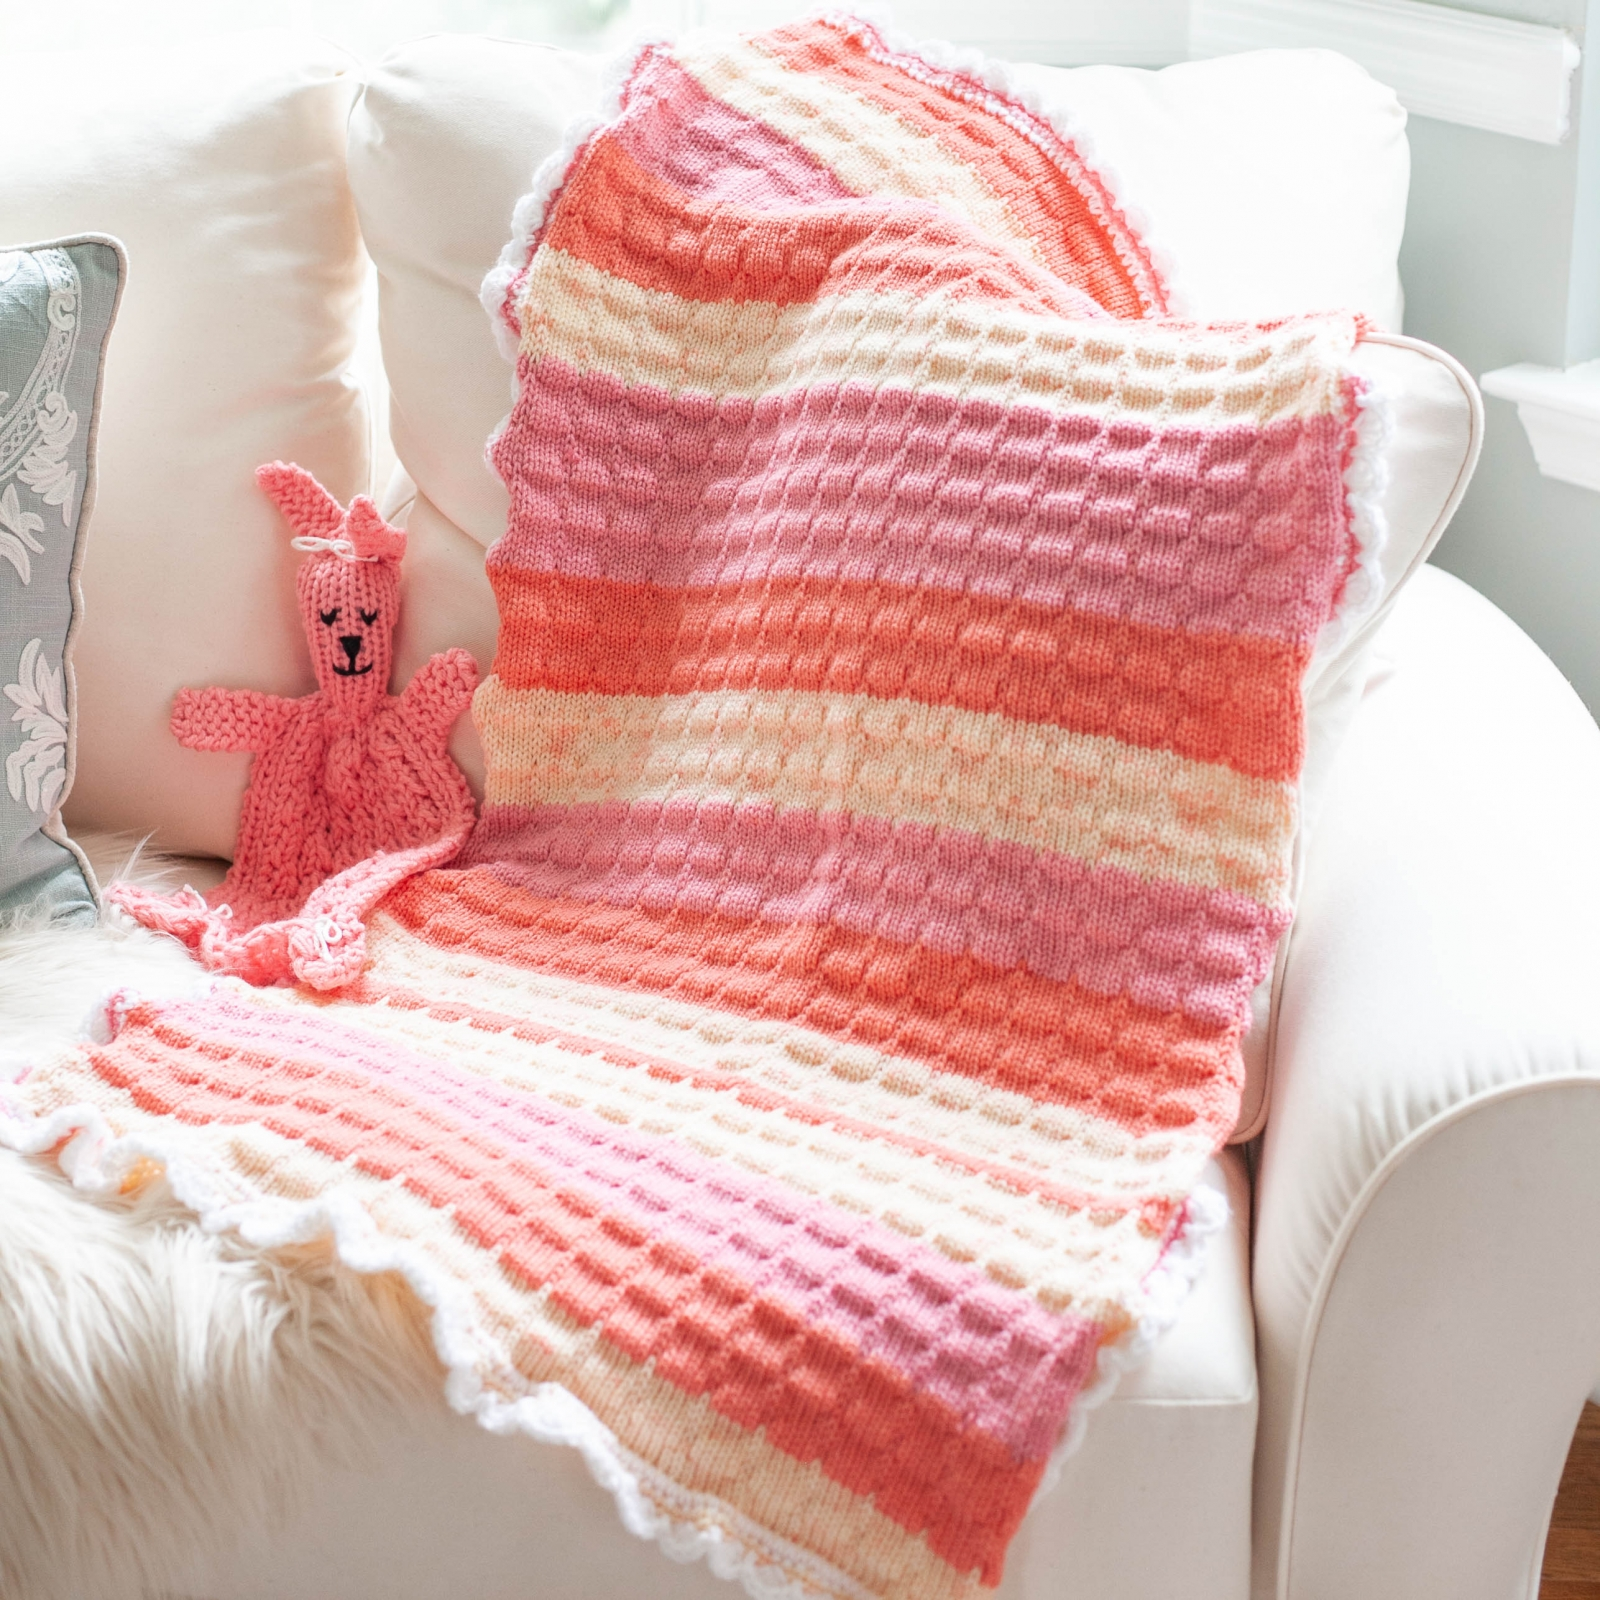 Loom Knit Baby Blanket With Crochet Edging PATTERN. | This ...